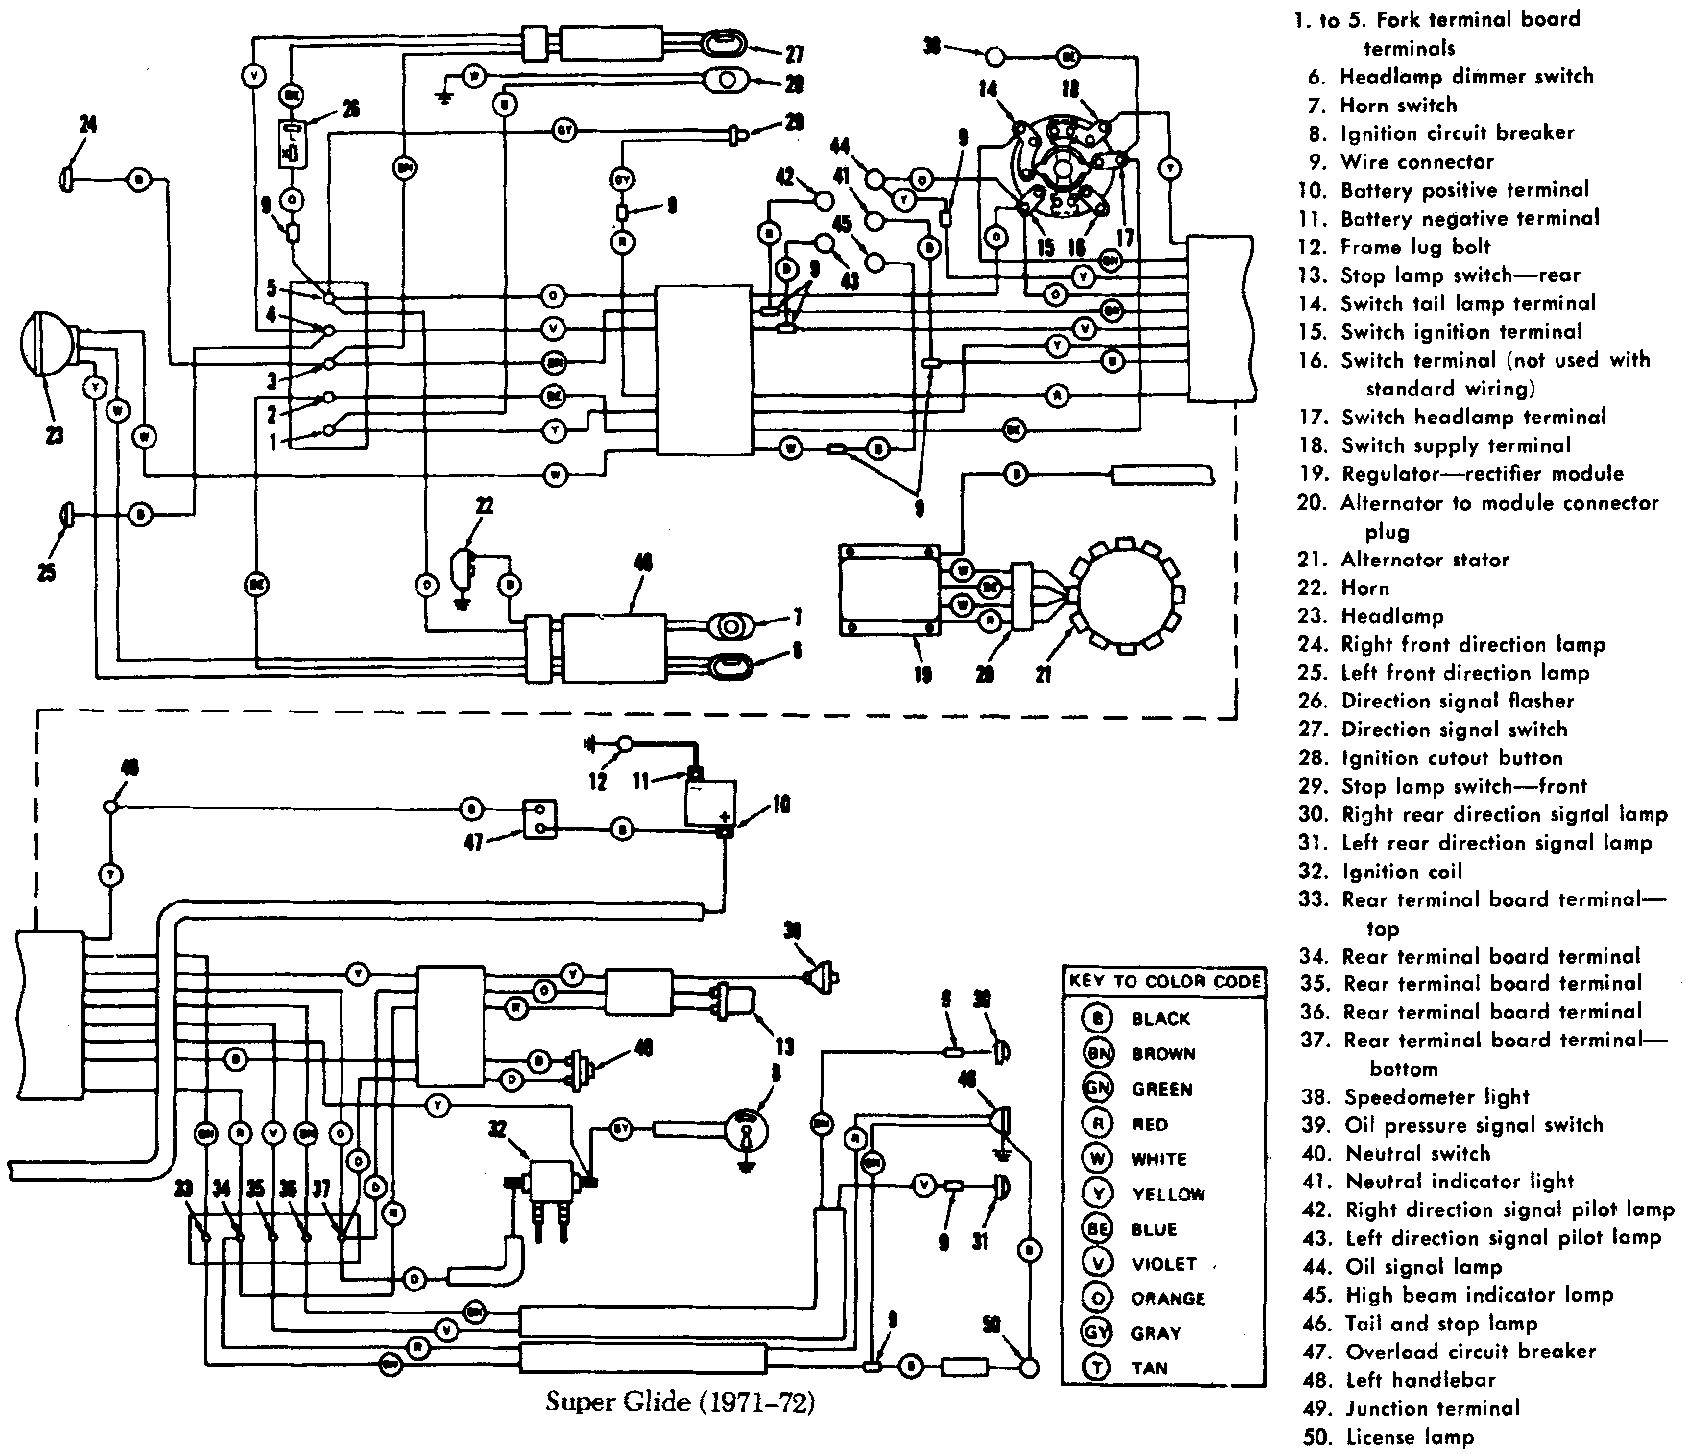 Harley Davidson Schematic And Diagram